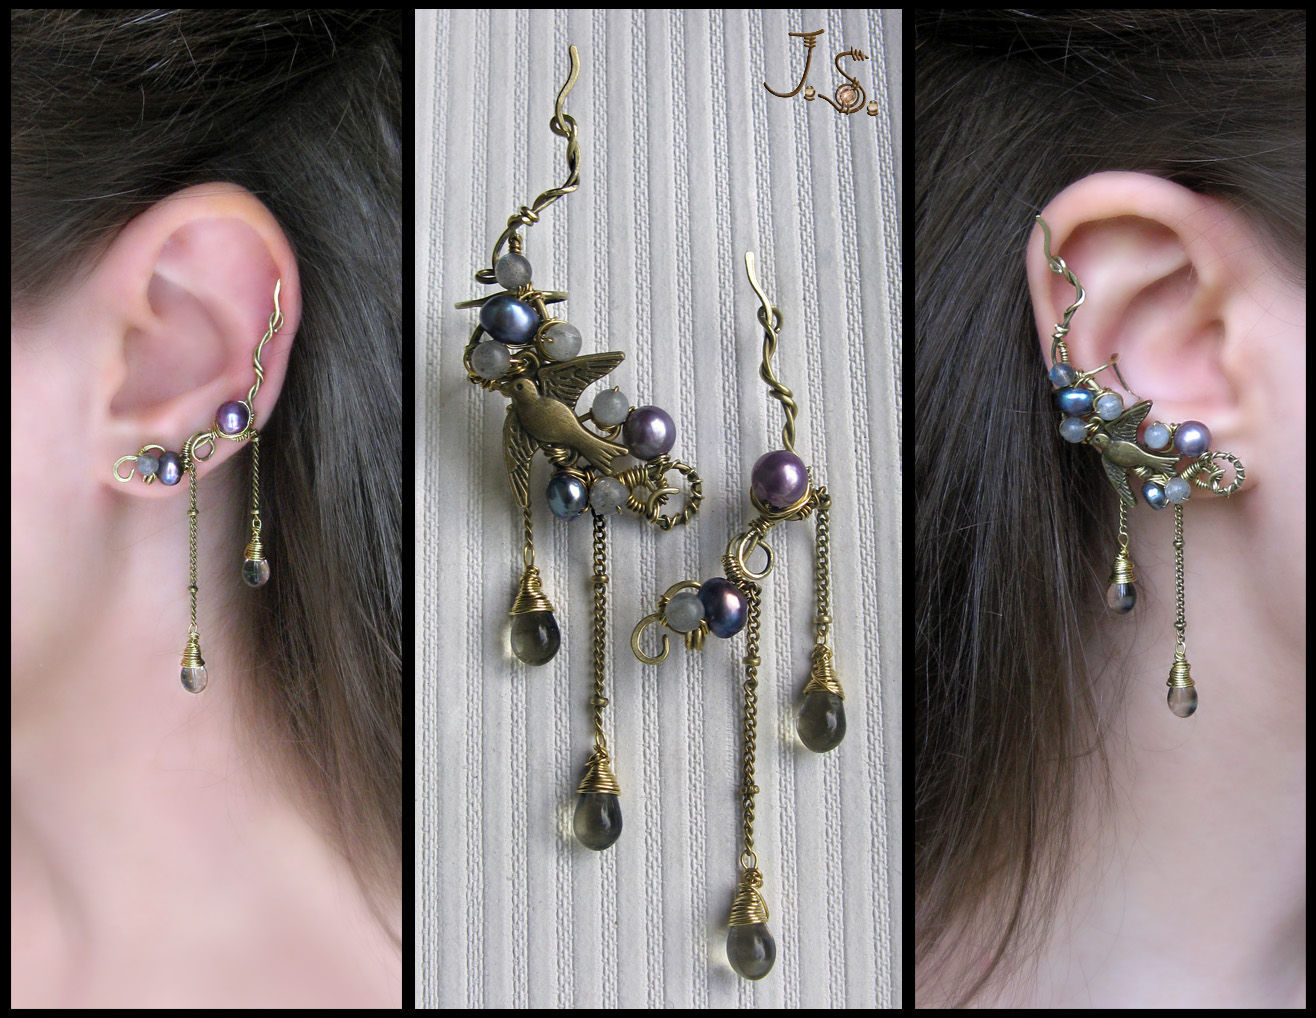 Through the thunderstorm ear cuff and ear pin by JSjewelry